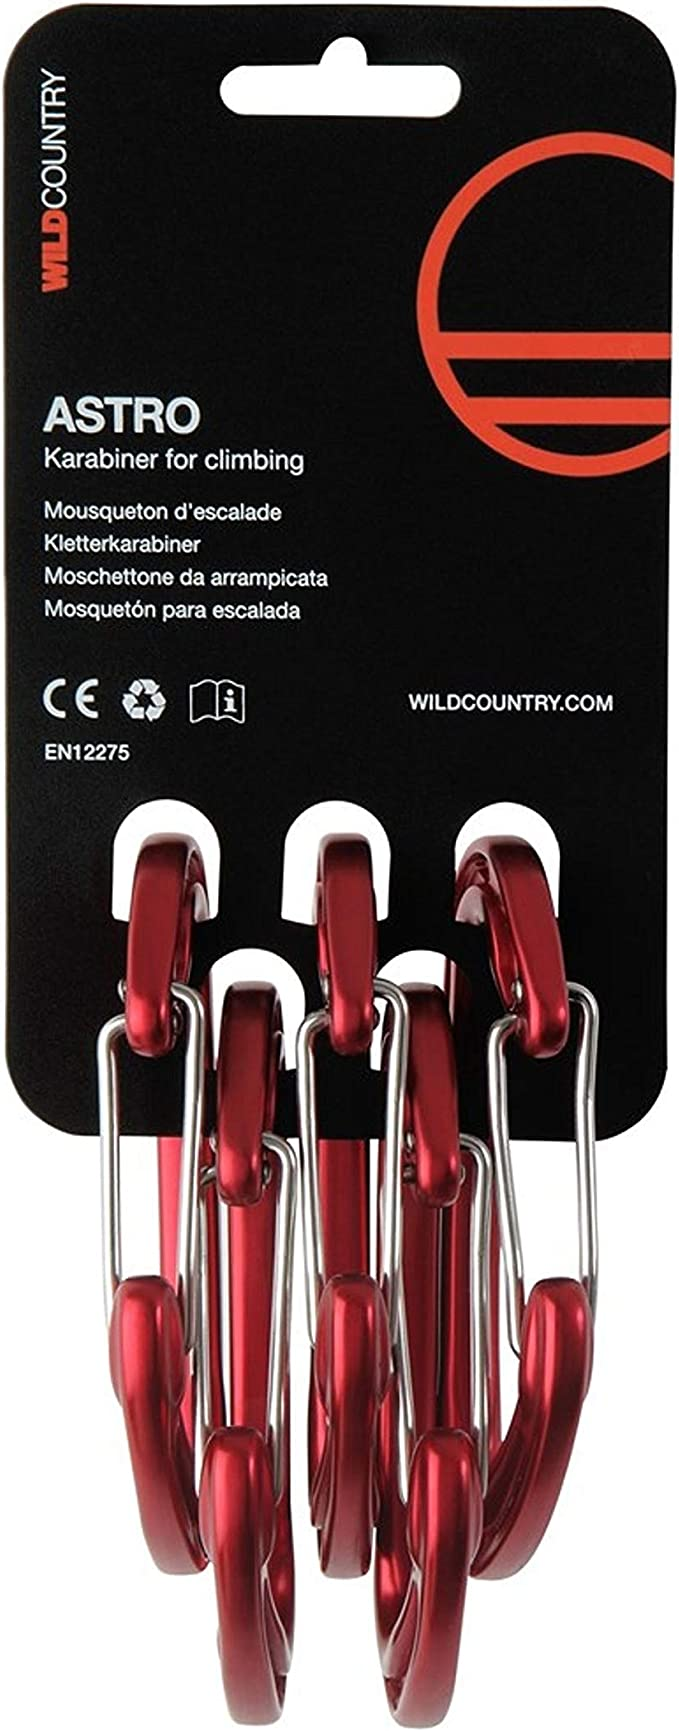 Wildcountry - Astro Anodised 5 Pack, Color Red